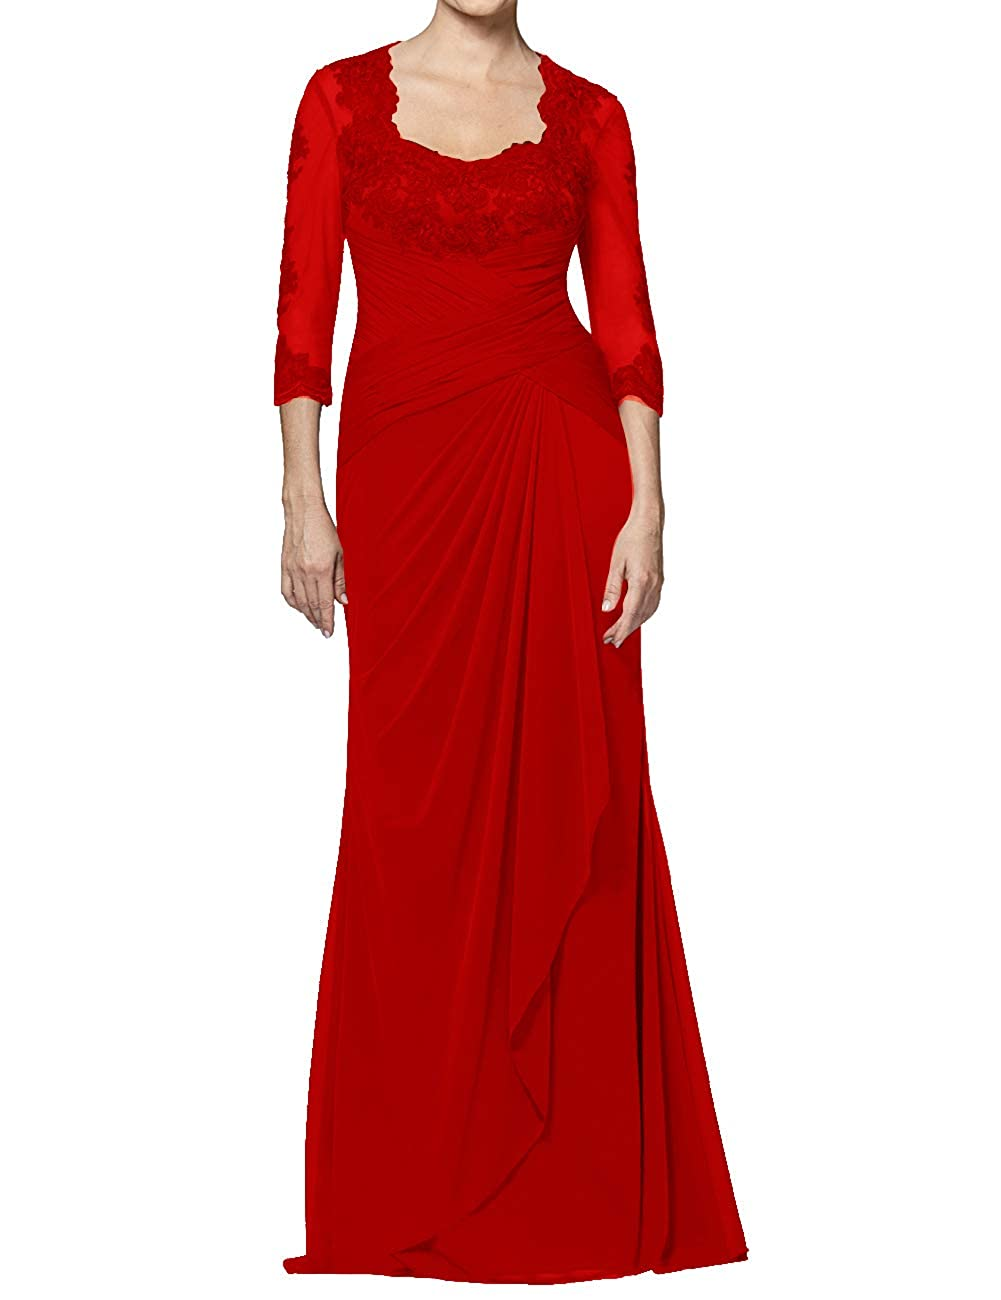 Red Mother of The Bride Dresses Long Appliques Evening Party Prom Gown for Women